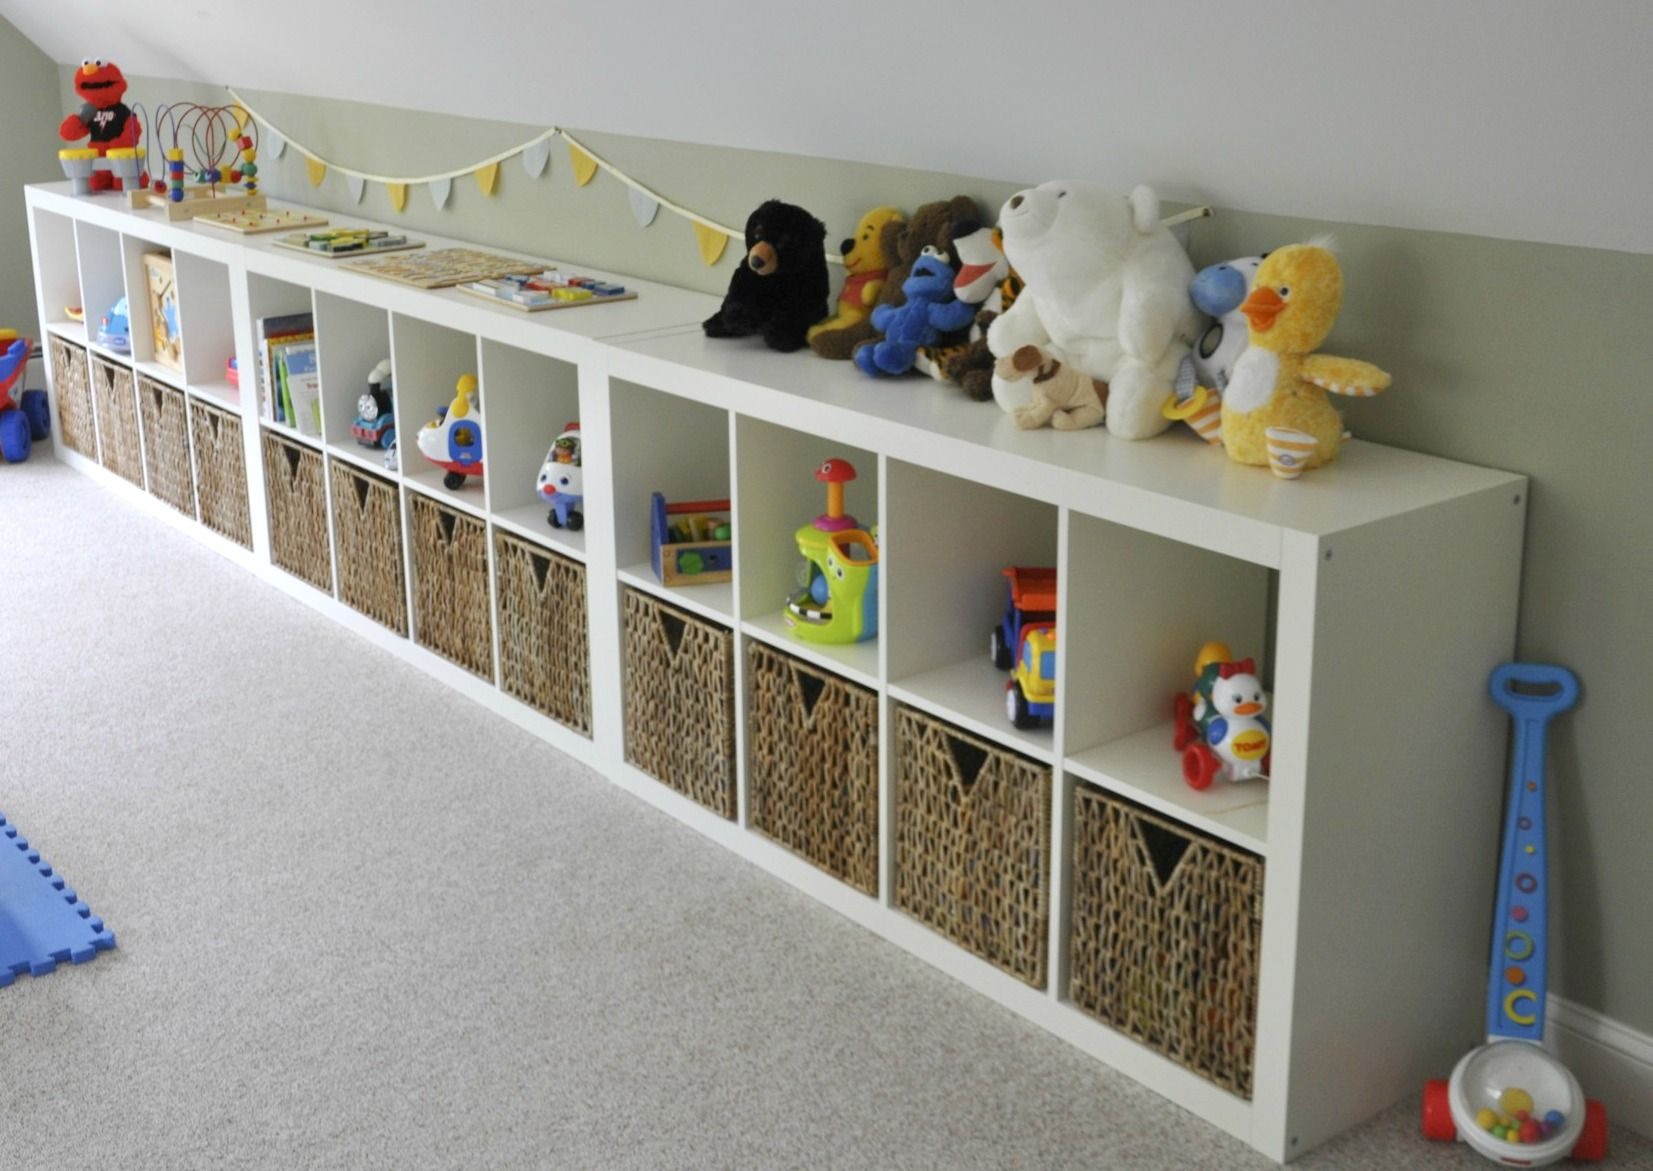 Ikea Expedit Playroom Storage Reveal Basement Ideas: ikea media room ideas